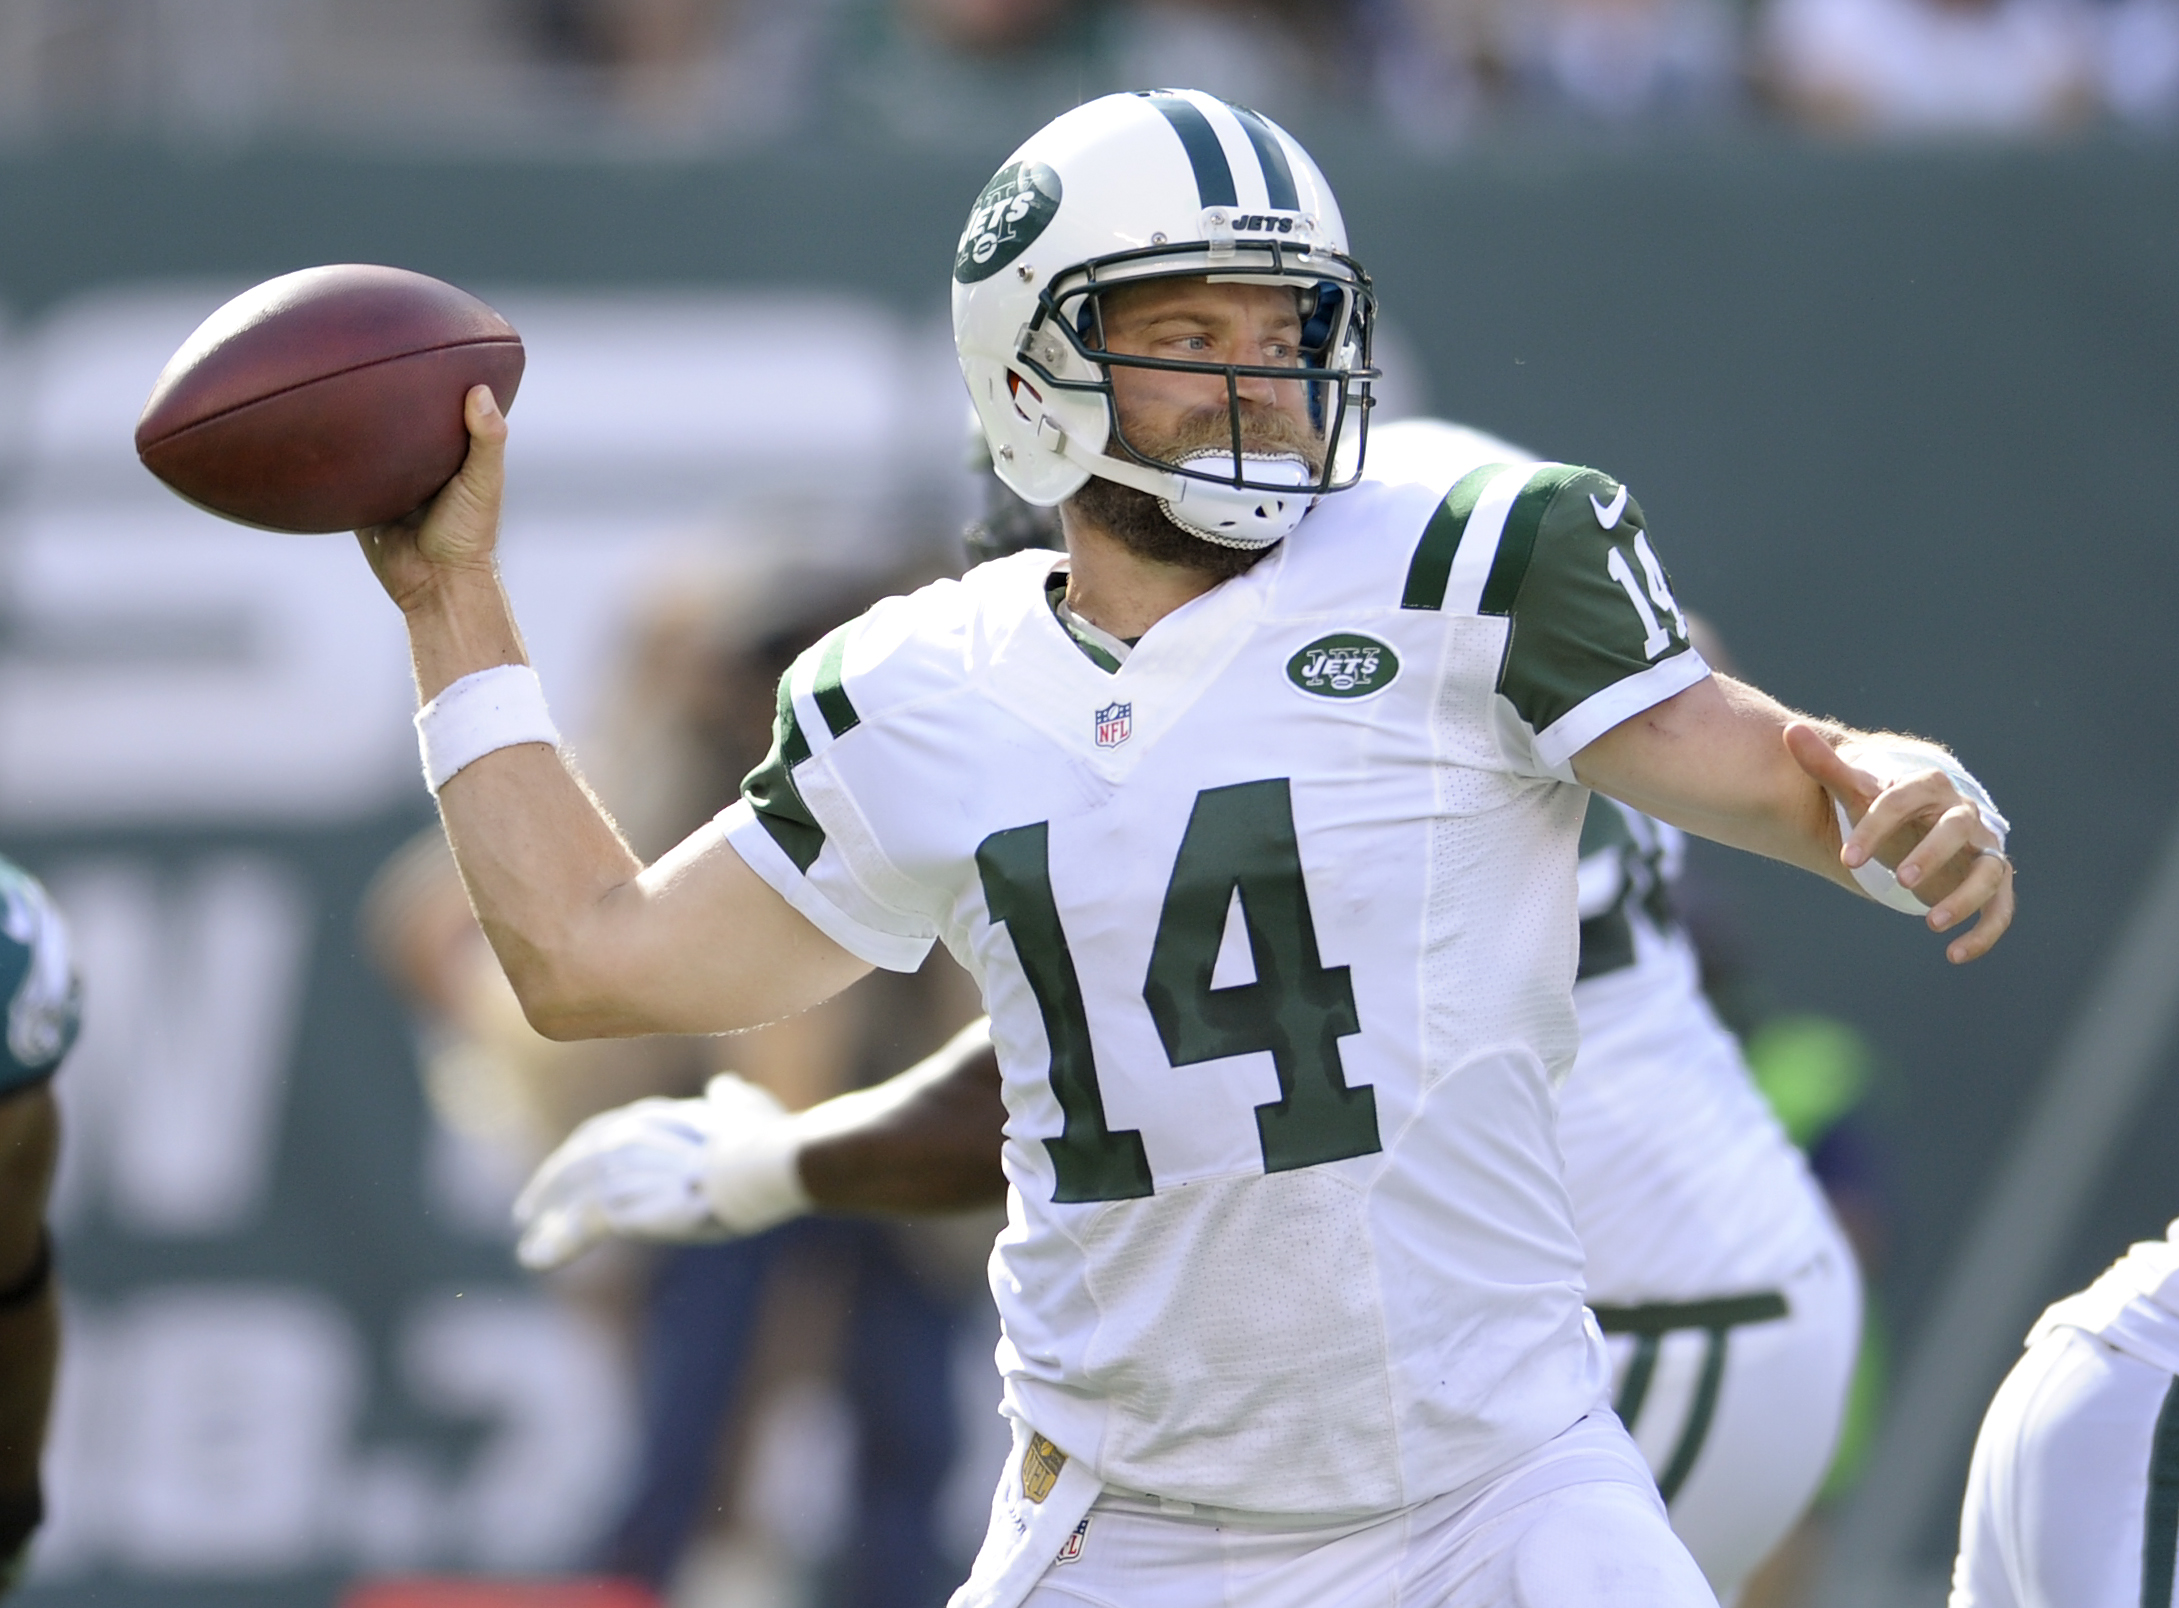 New York Jets quarterback Ryan Fitzpatrick (14) throws a pass against the Philadelphia Eagles during the fourth quarter of an NFL football game, Sunday, Sept. 27, 2015, in East Rutherford, N.J. (AP Photo/Bill Kostroun)